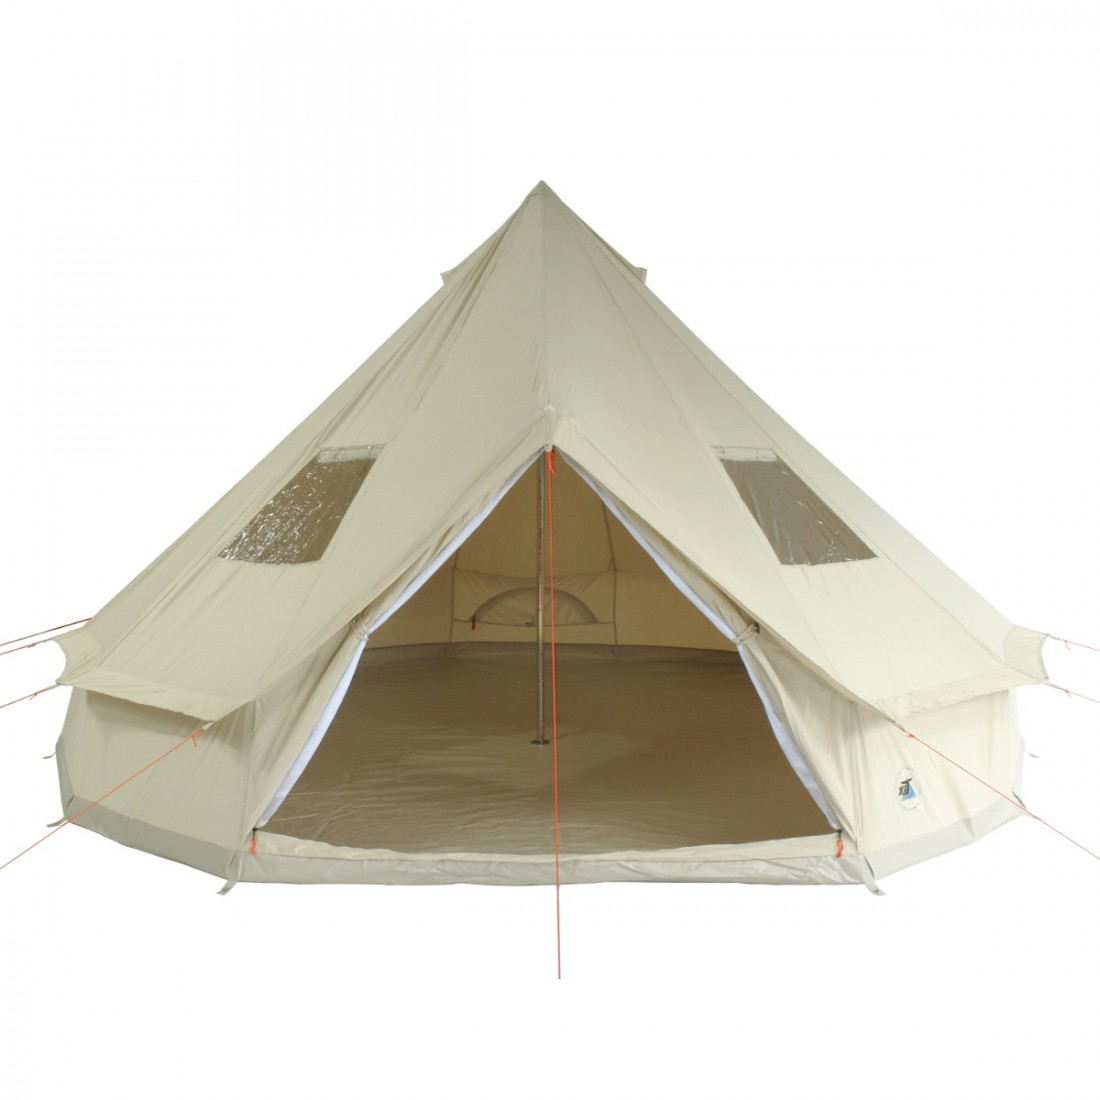 10T Outdoor Equipment - DESERT 10 - Image 1  sc 1 st  C&ing-Outdoor.eu & Buy 10T Desert 10 - 10 person cotton pyramid tent sewn in ground ...